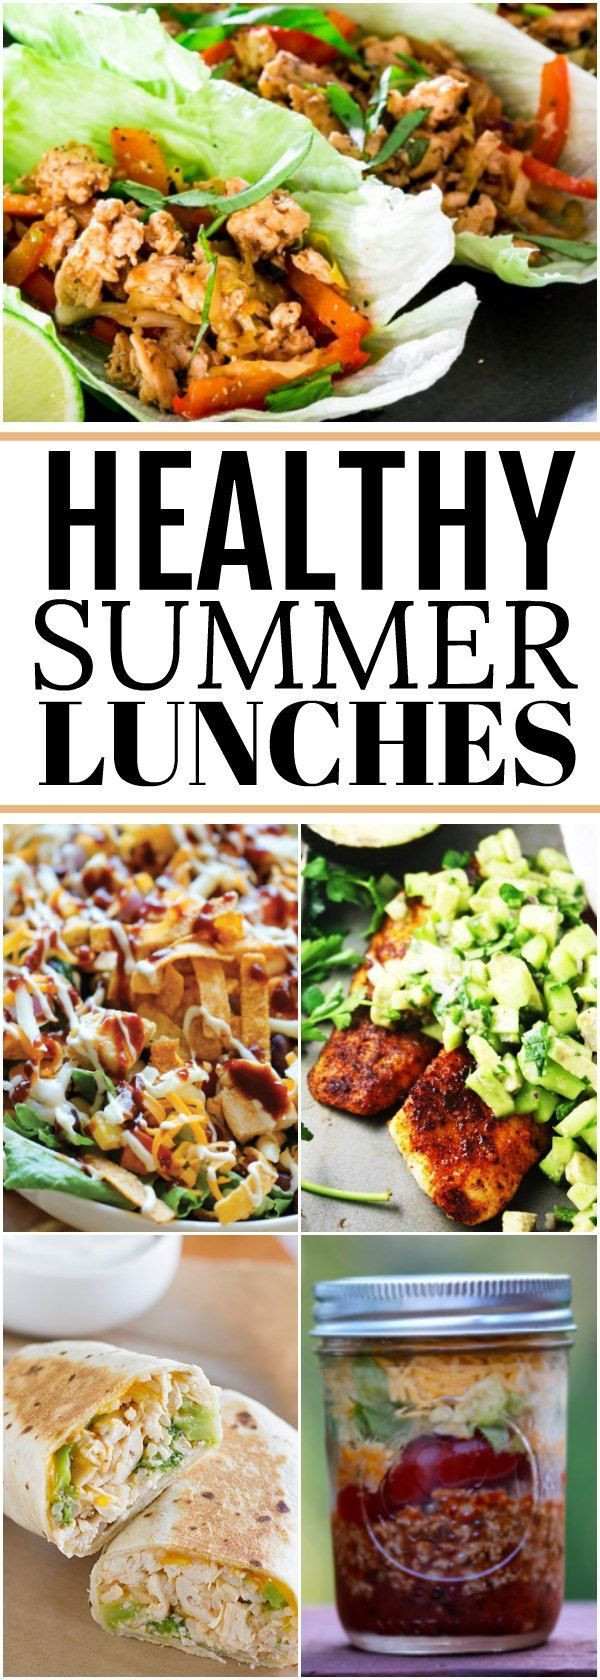 Healthy Summer Lunches  Best 25 Summer lunch recipes ideas on Pinterest